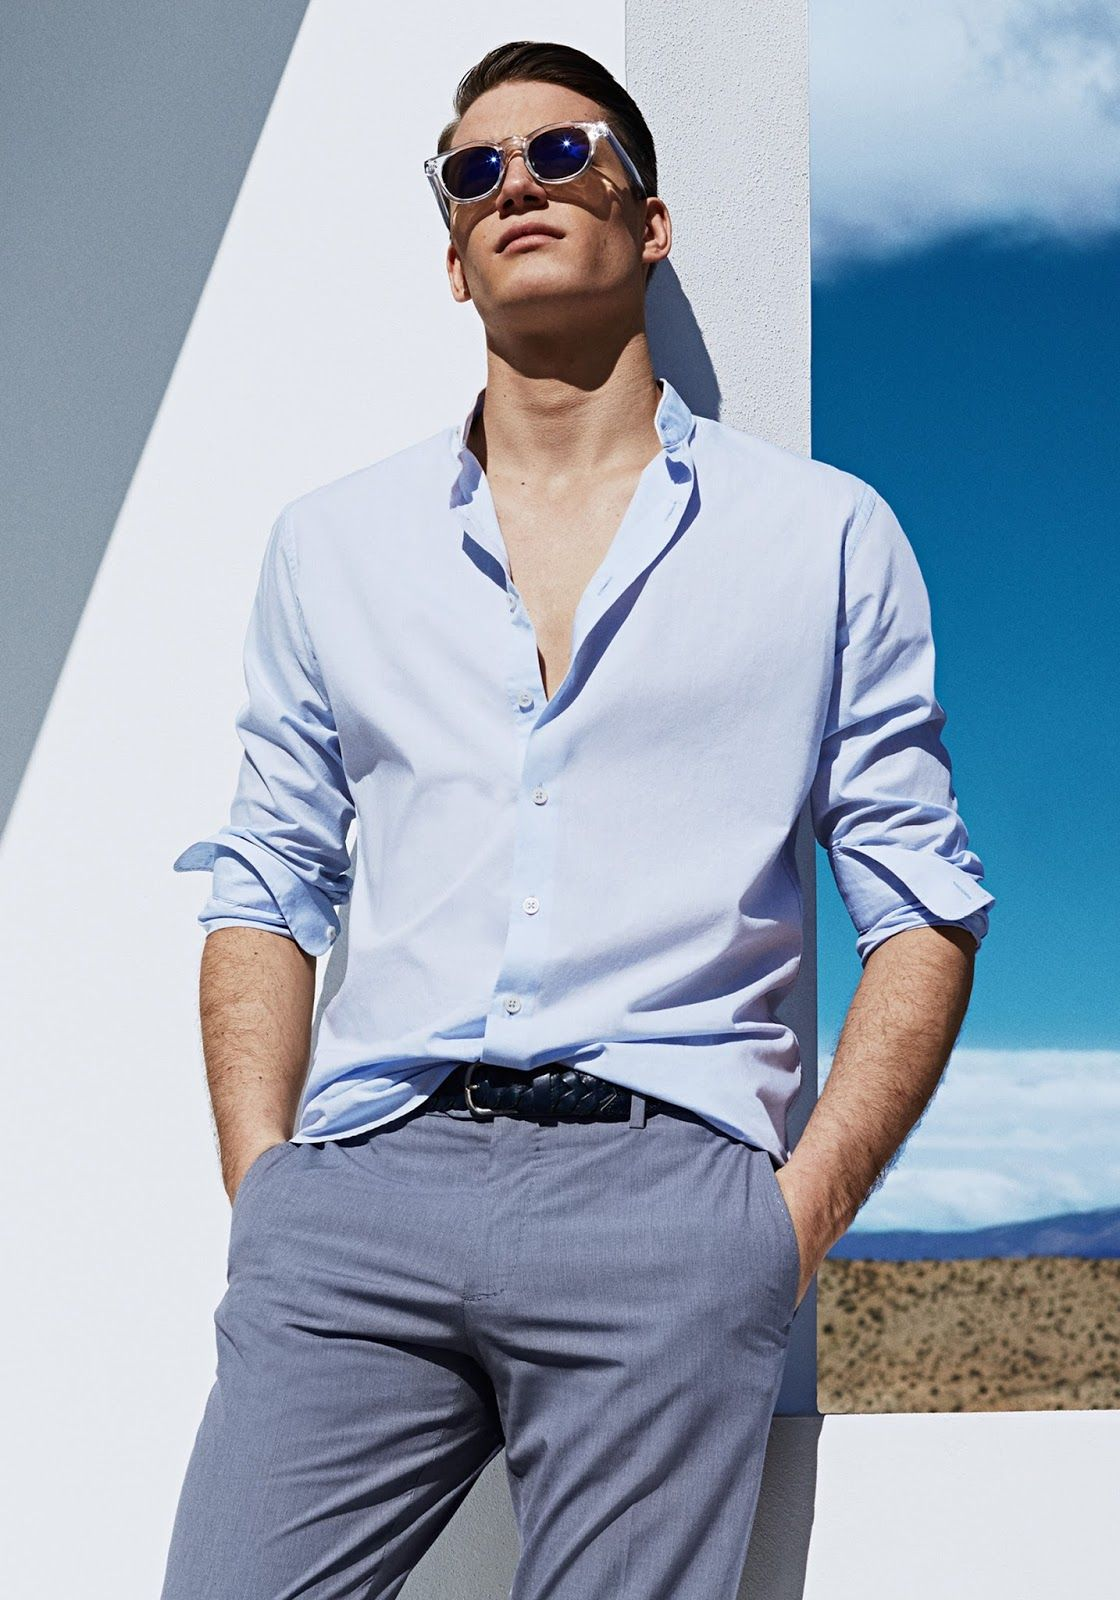 Florian Van Bael Is A Summer Vision For Mango Casual Shirts For Men Men Street Fashion Well Dressed Men [ 1600 x 1120 Pixel ]